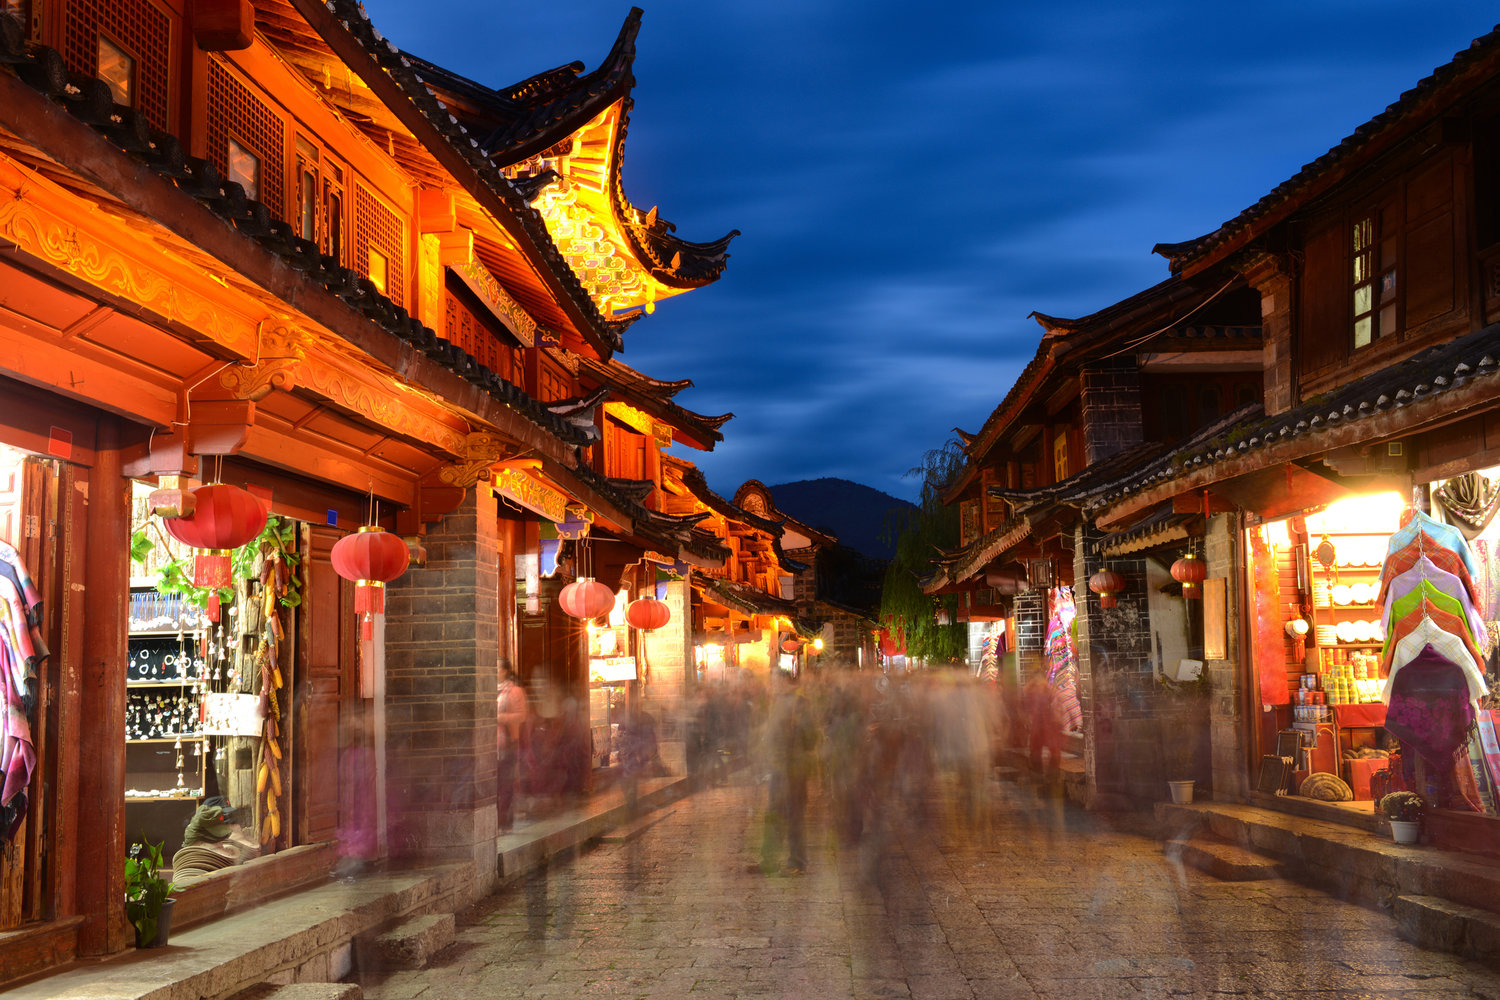 Lijiang+Old+Town+Commercialization.jpeg